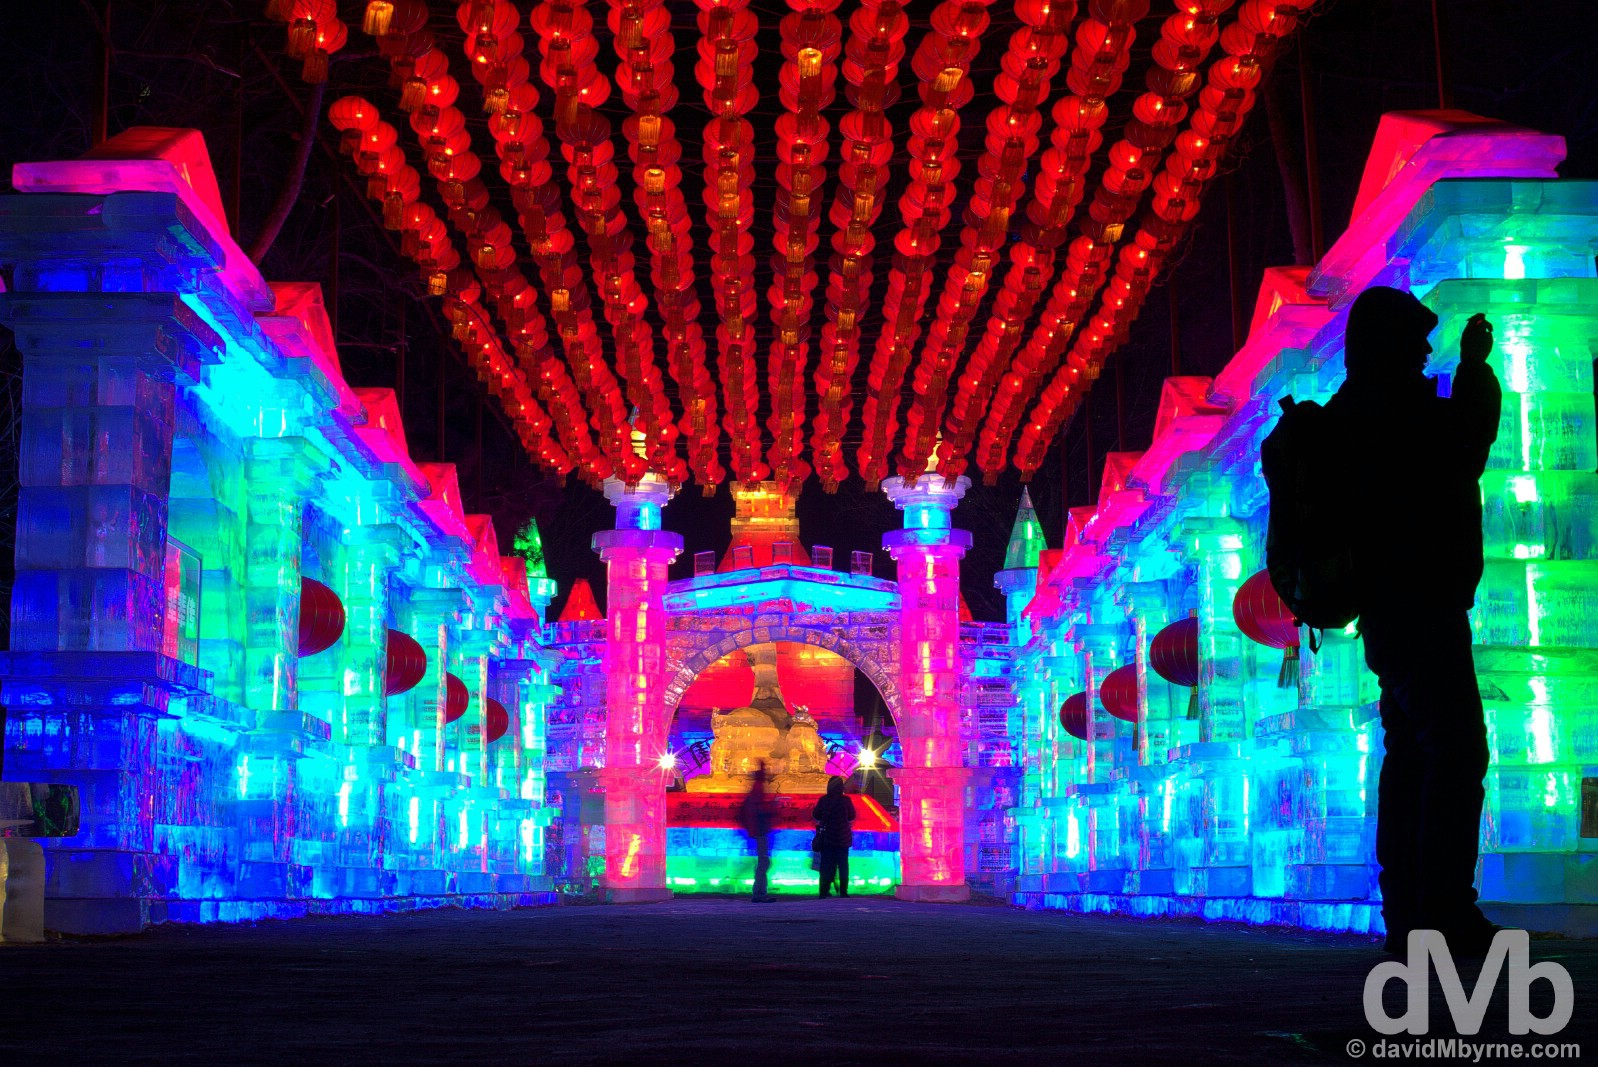 An ice structure in Zhaolin Park as part of the annual International Ice and Snow Sculpture Festival in Harbin, China. February 6, 2015.